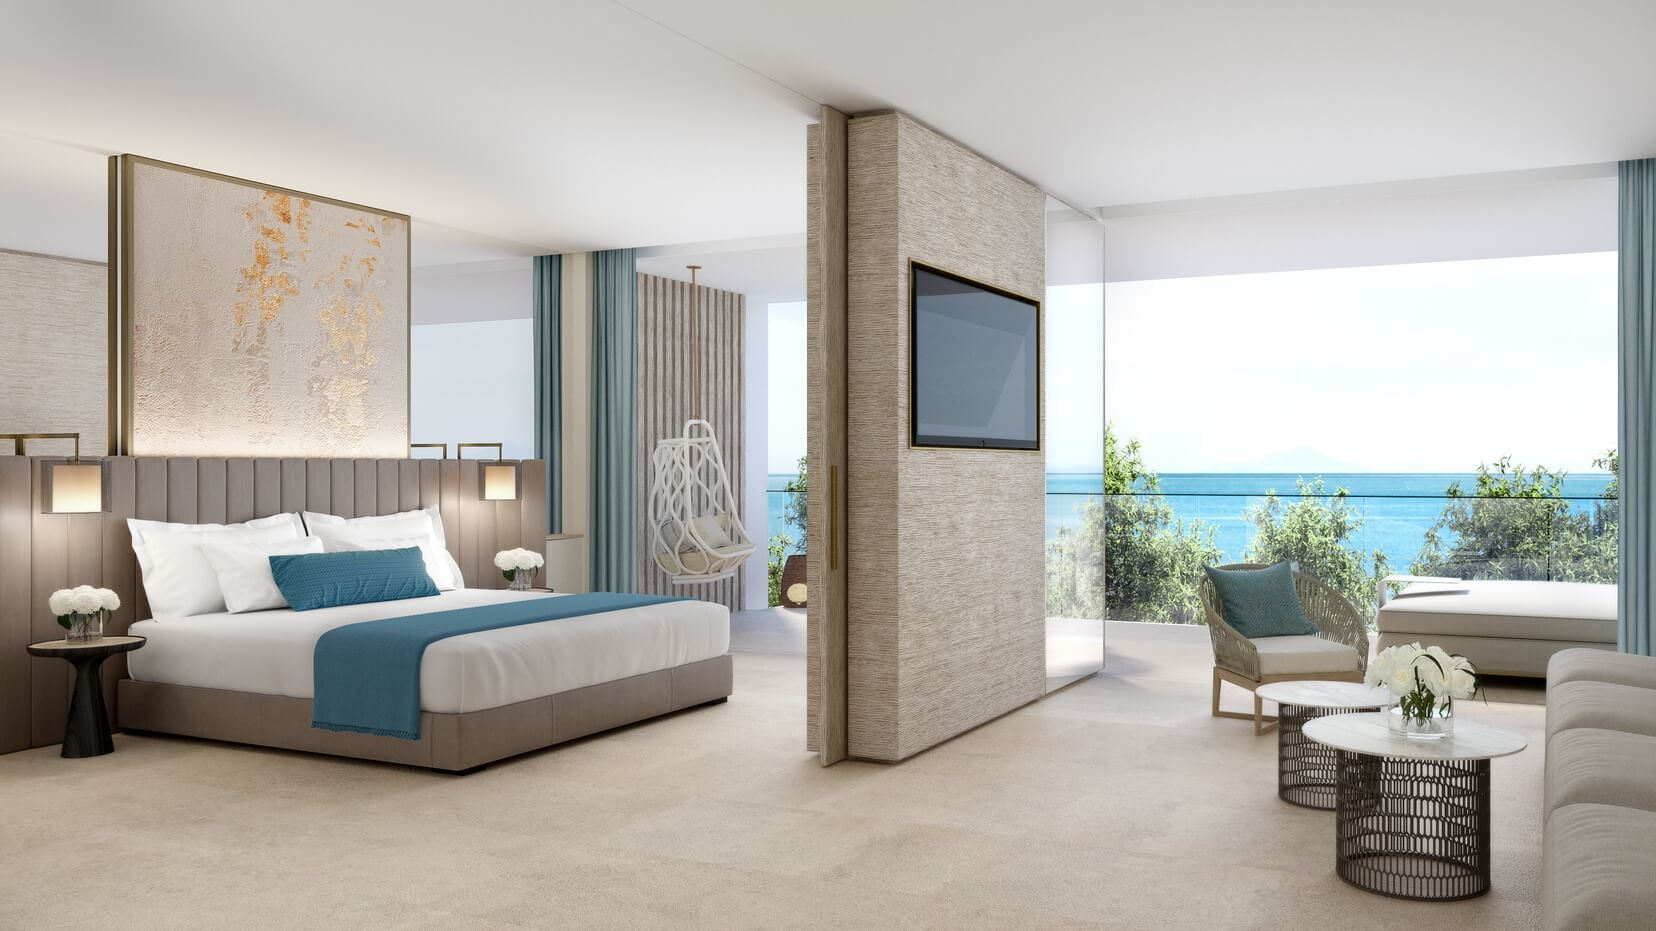 Ikos Andalusia One bedroom Sea view